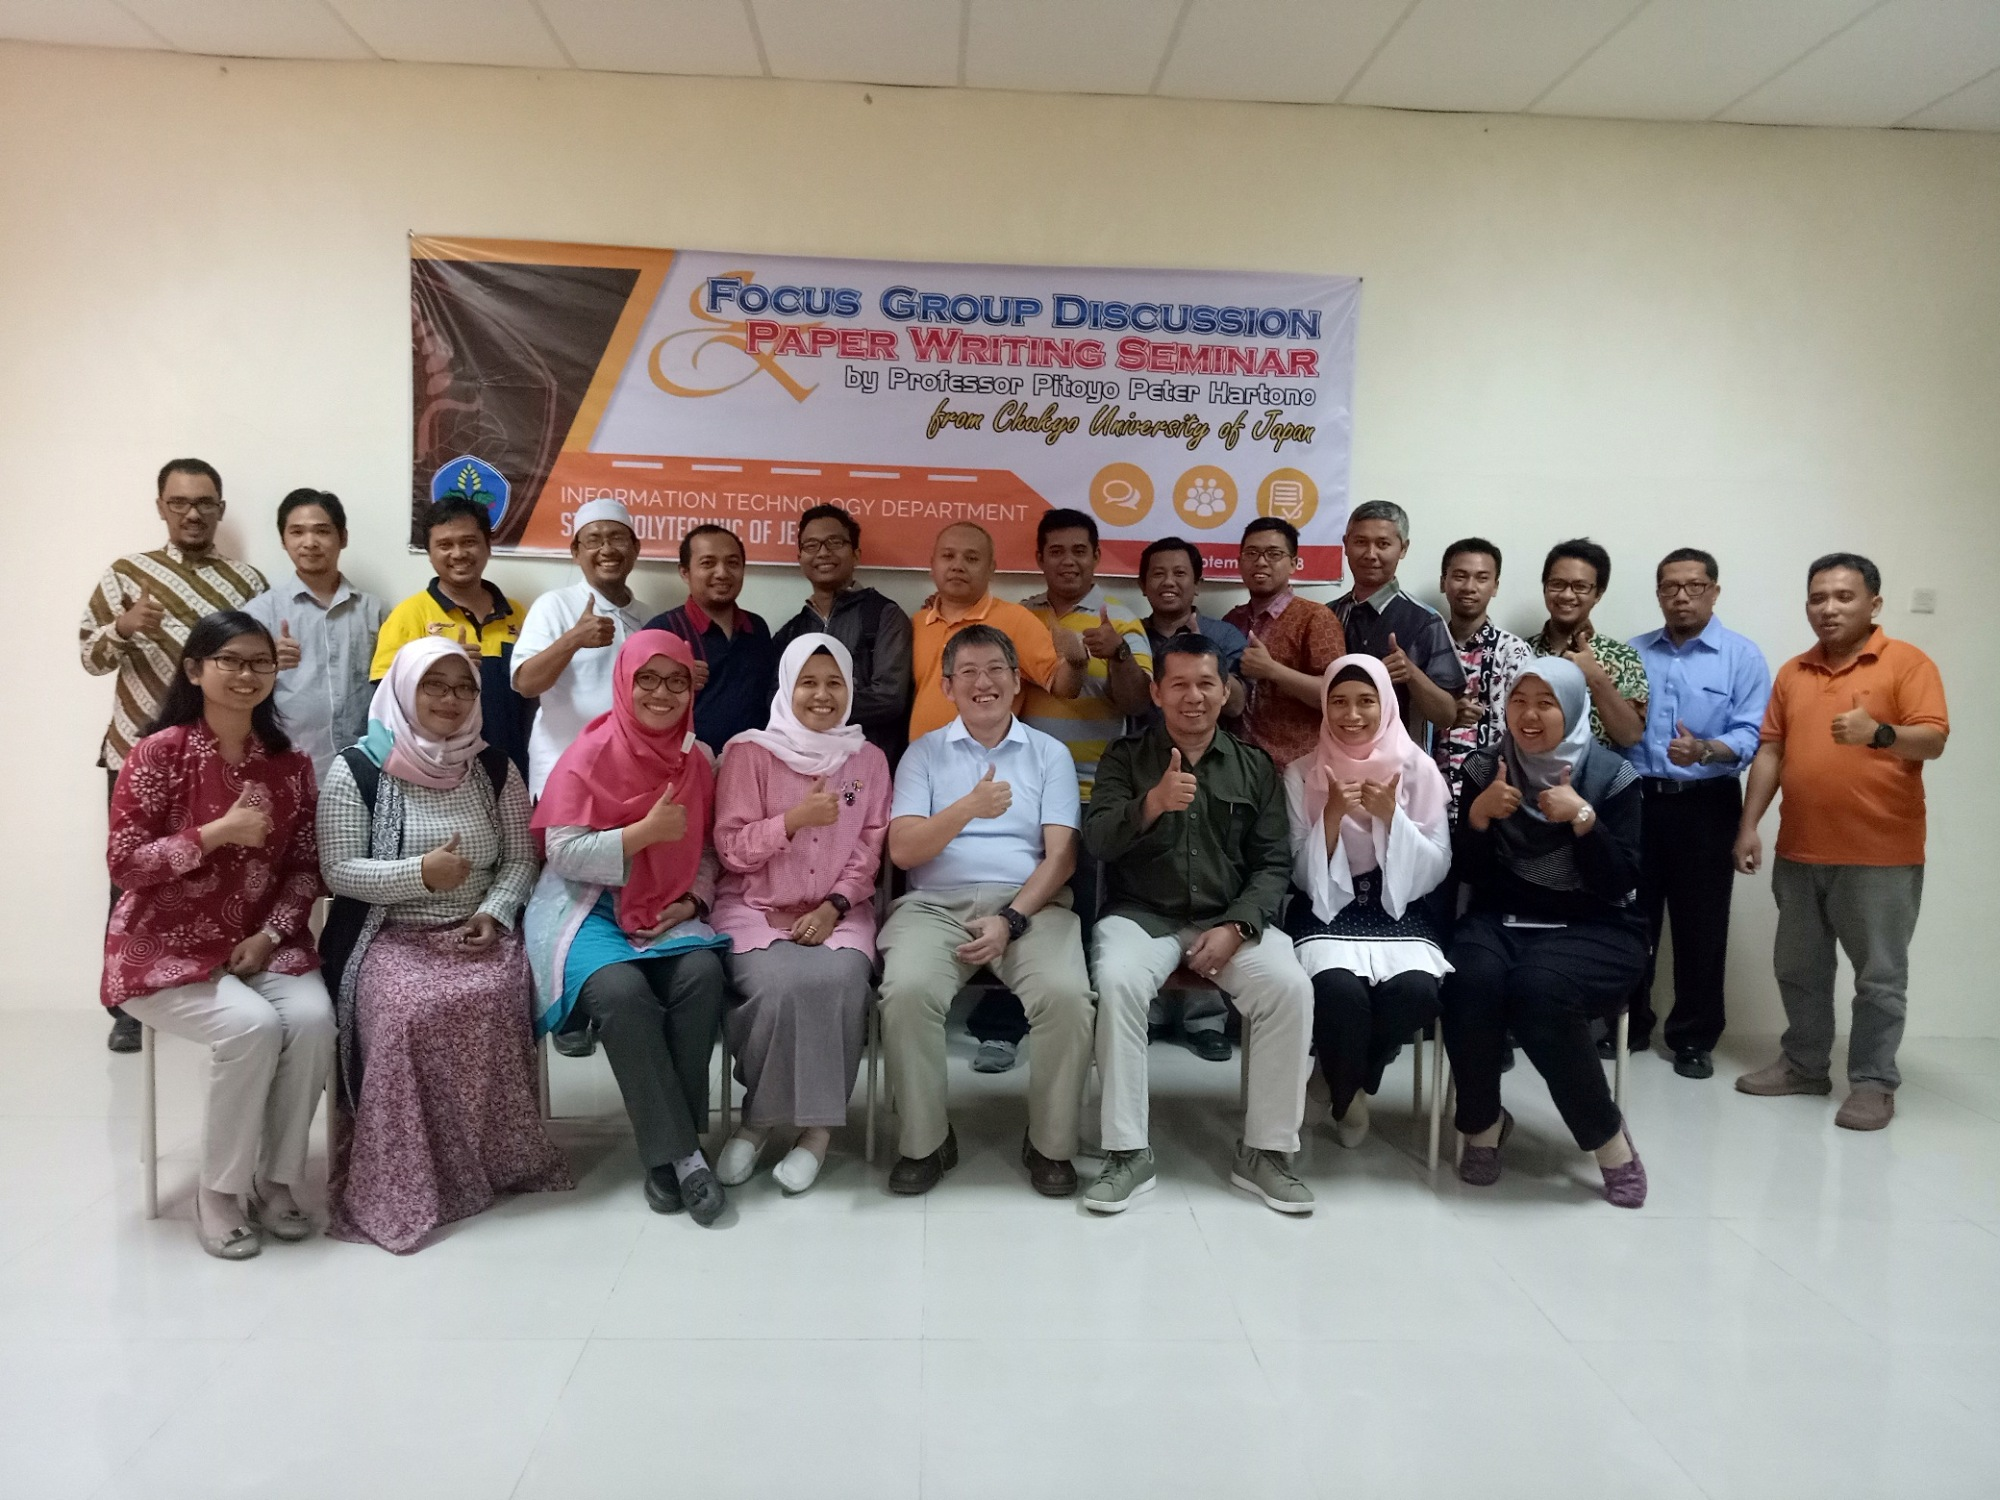 Focus Group Discussion oleh Profesor Pitoyo Peter Hartono dari Chukyo University